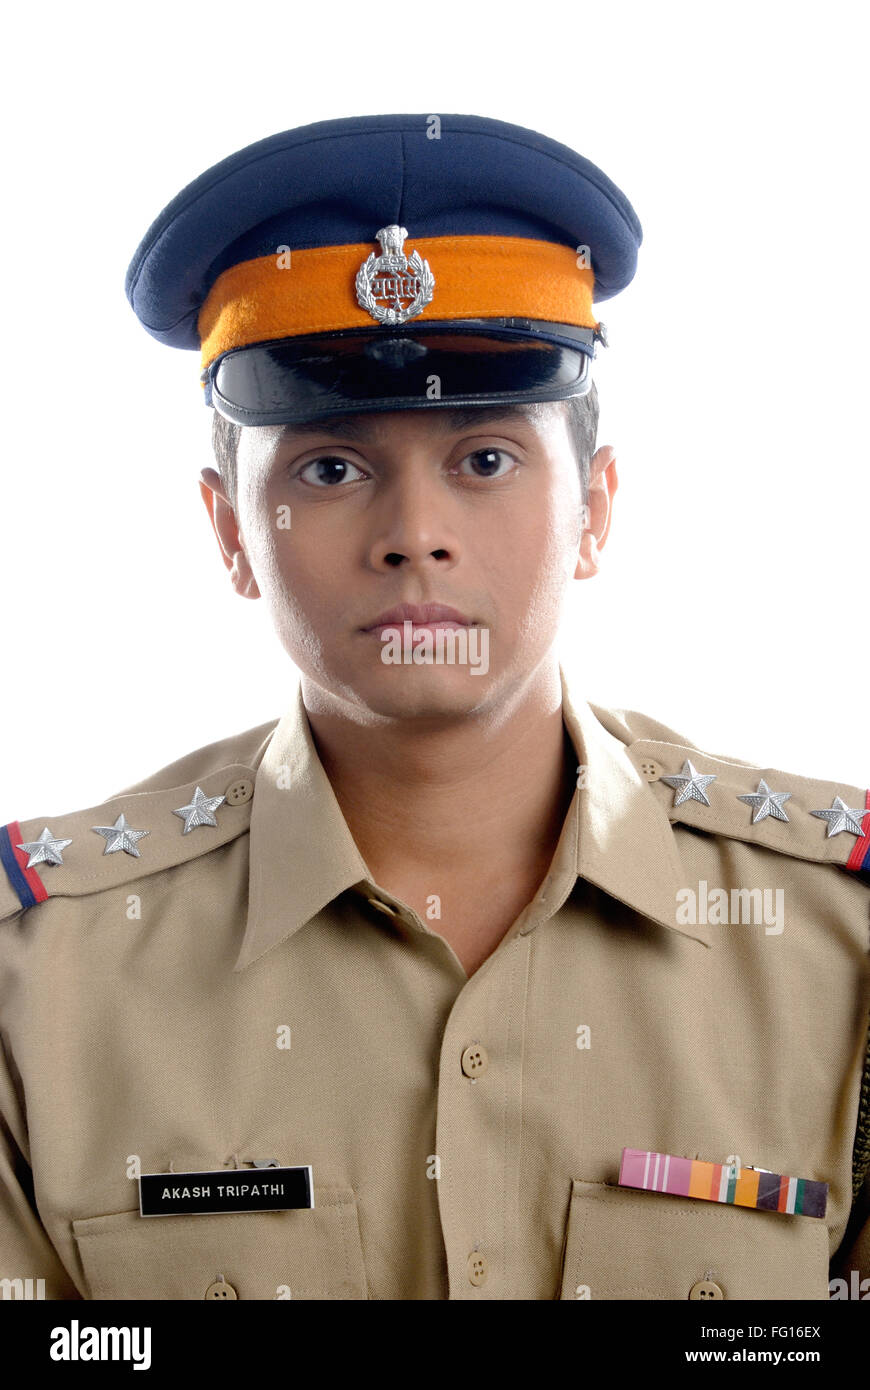 Police Inspector Officer Uniform Stock Photos & Police